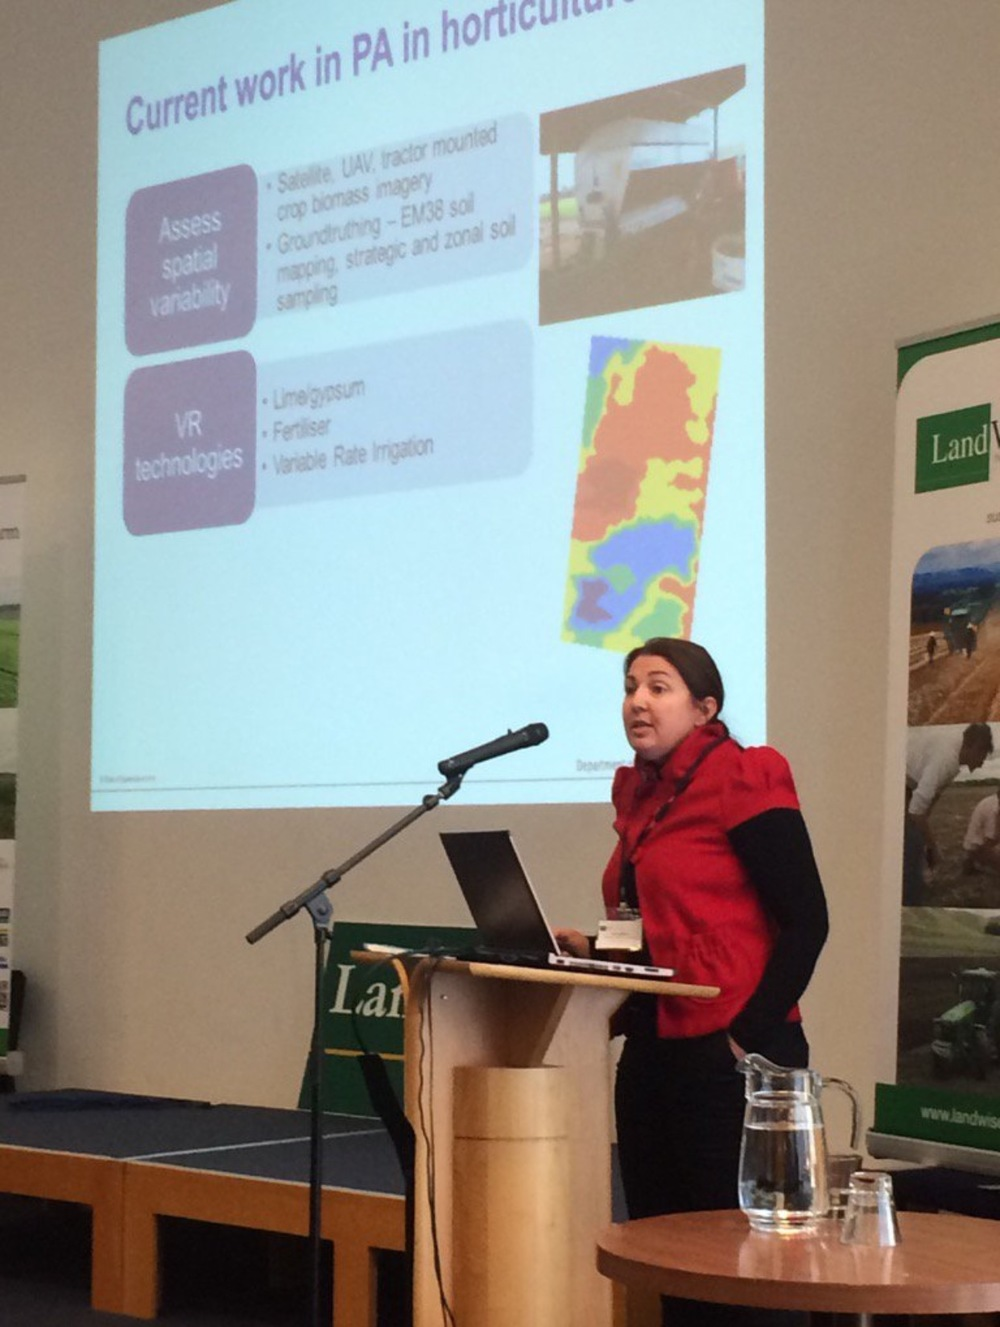 Julie O'Halloran from the Queensland Government Department of Agriculture and Fisheries